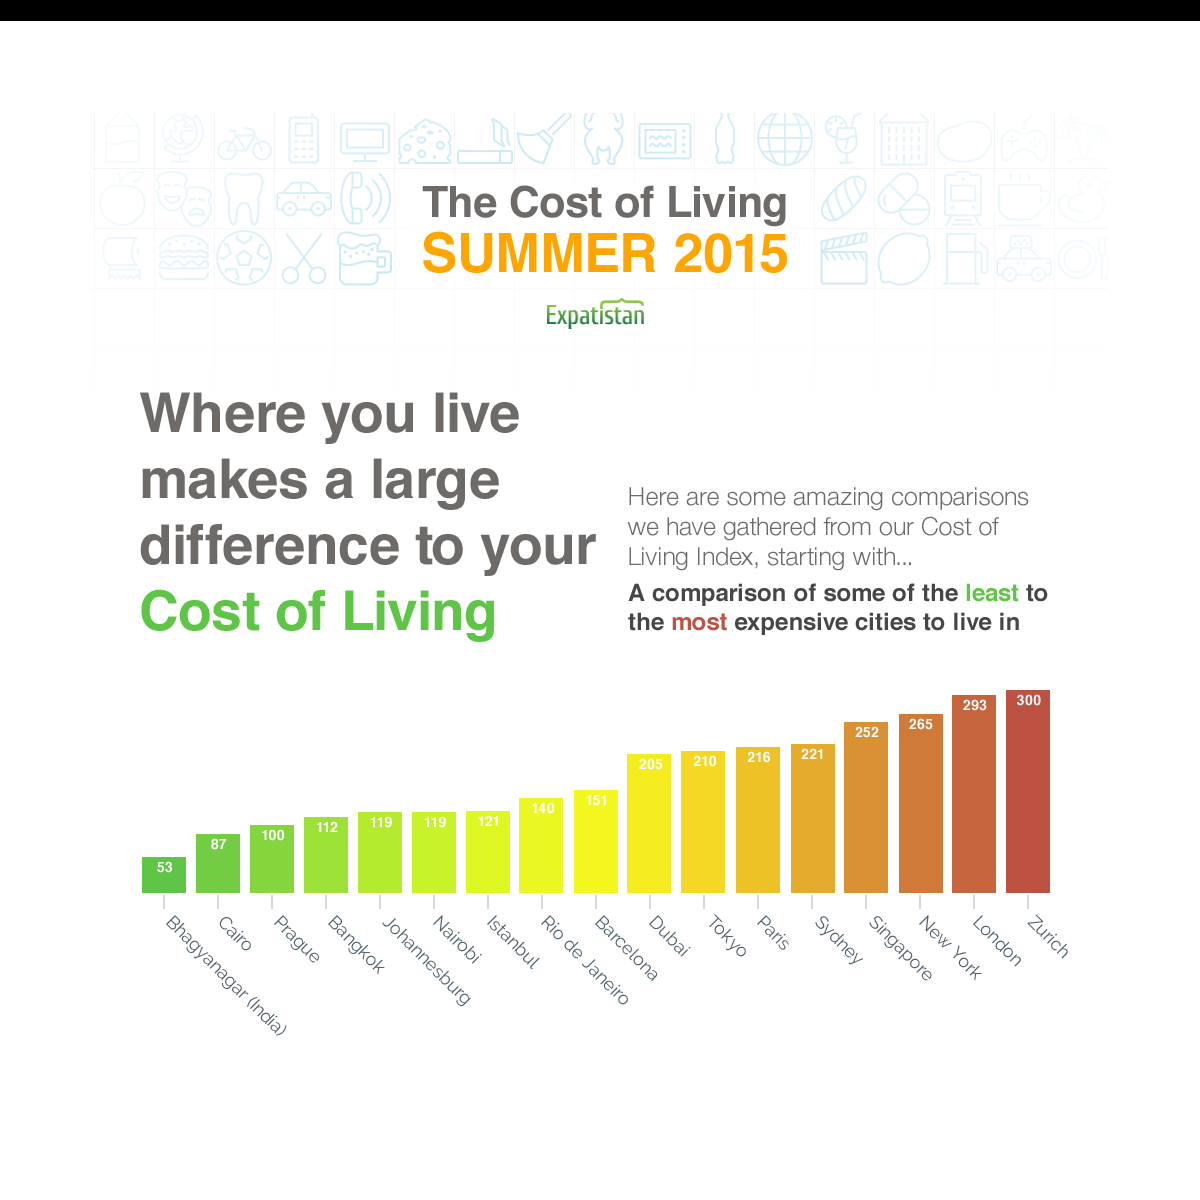 Cost Of Backyard Fence: Summer Of 2015 Cost Of Living Ranking For Expatriates